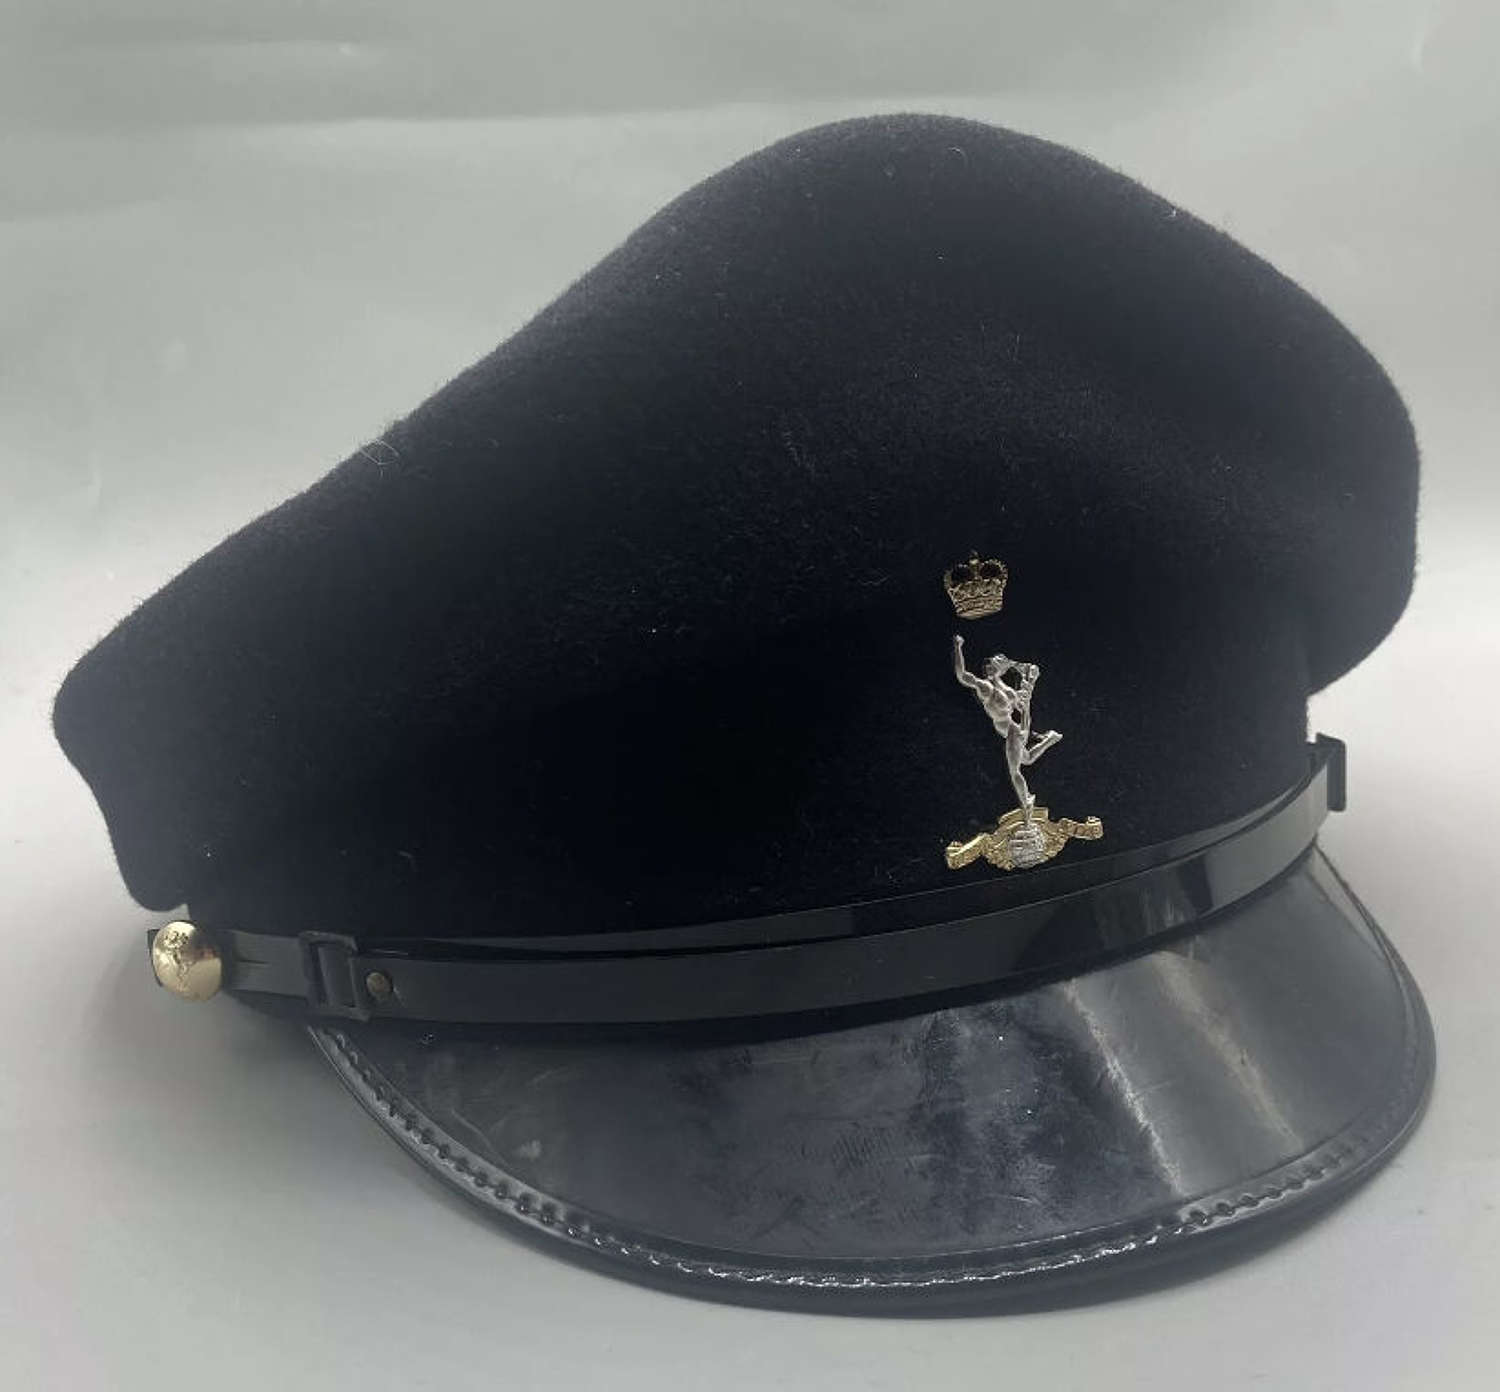 1960s British Army Women's Royal Signals Officers Peaked Cap Size 56